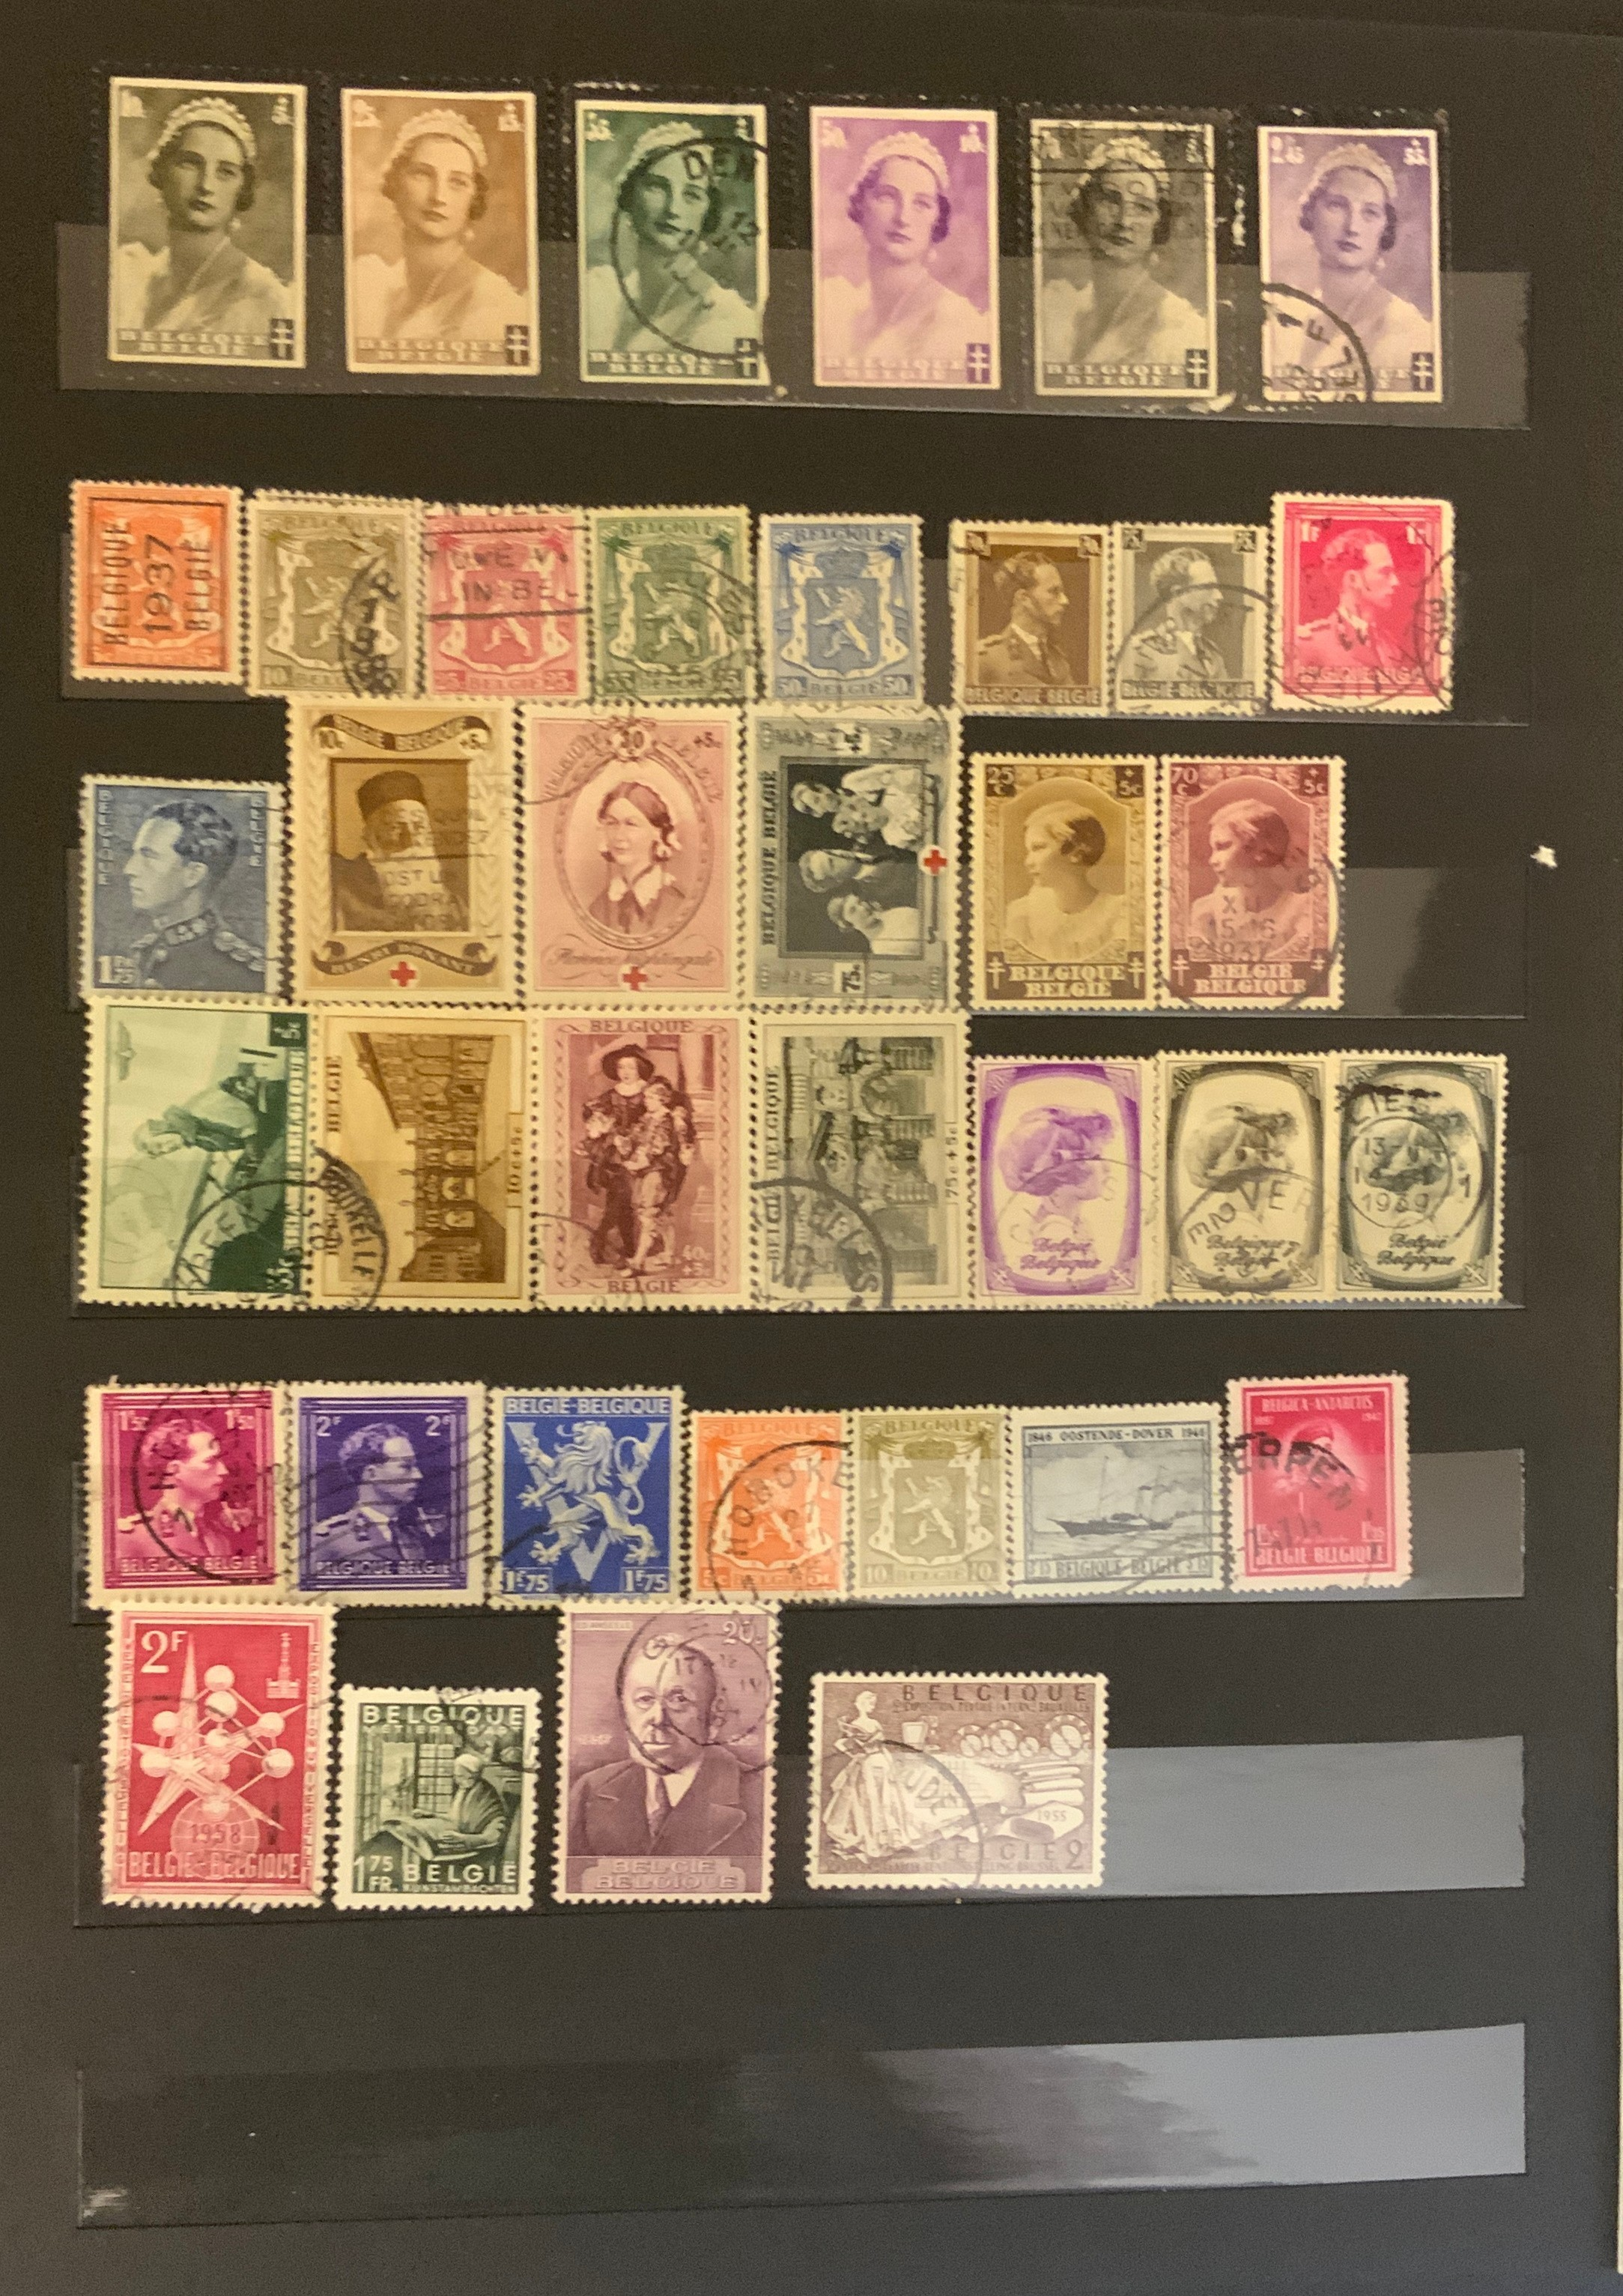 STOCKBOOK WITH STAMPS FROM VARIOUS COUNTRIES INCLUDING AUSTRIA, BELGIUM, FRANCE - Image 9 of 16